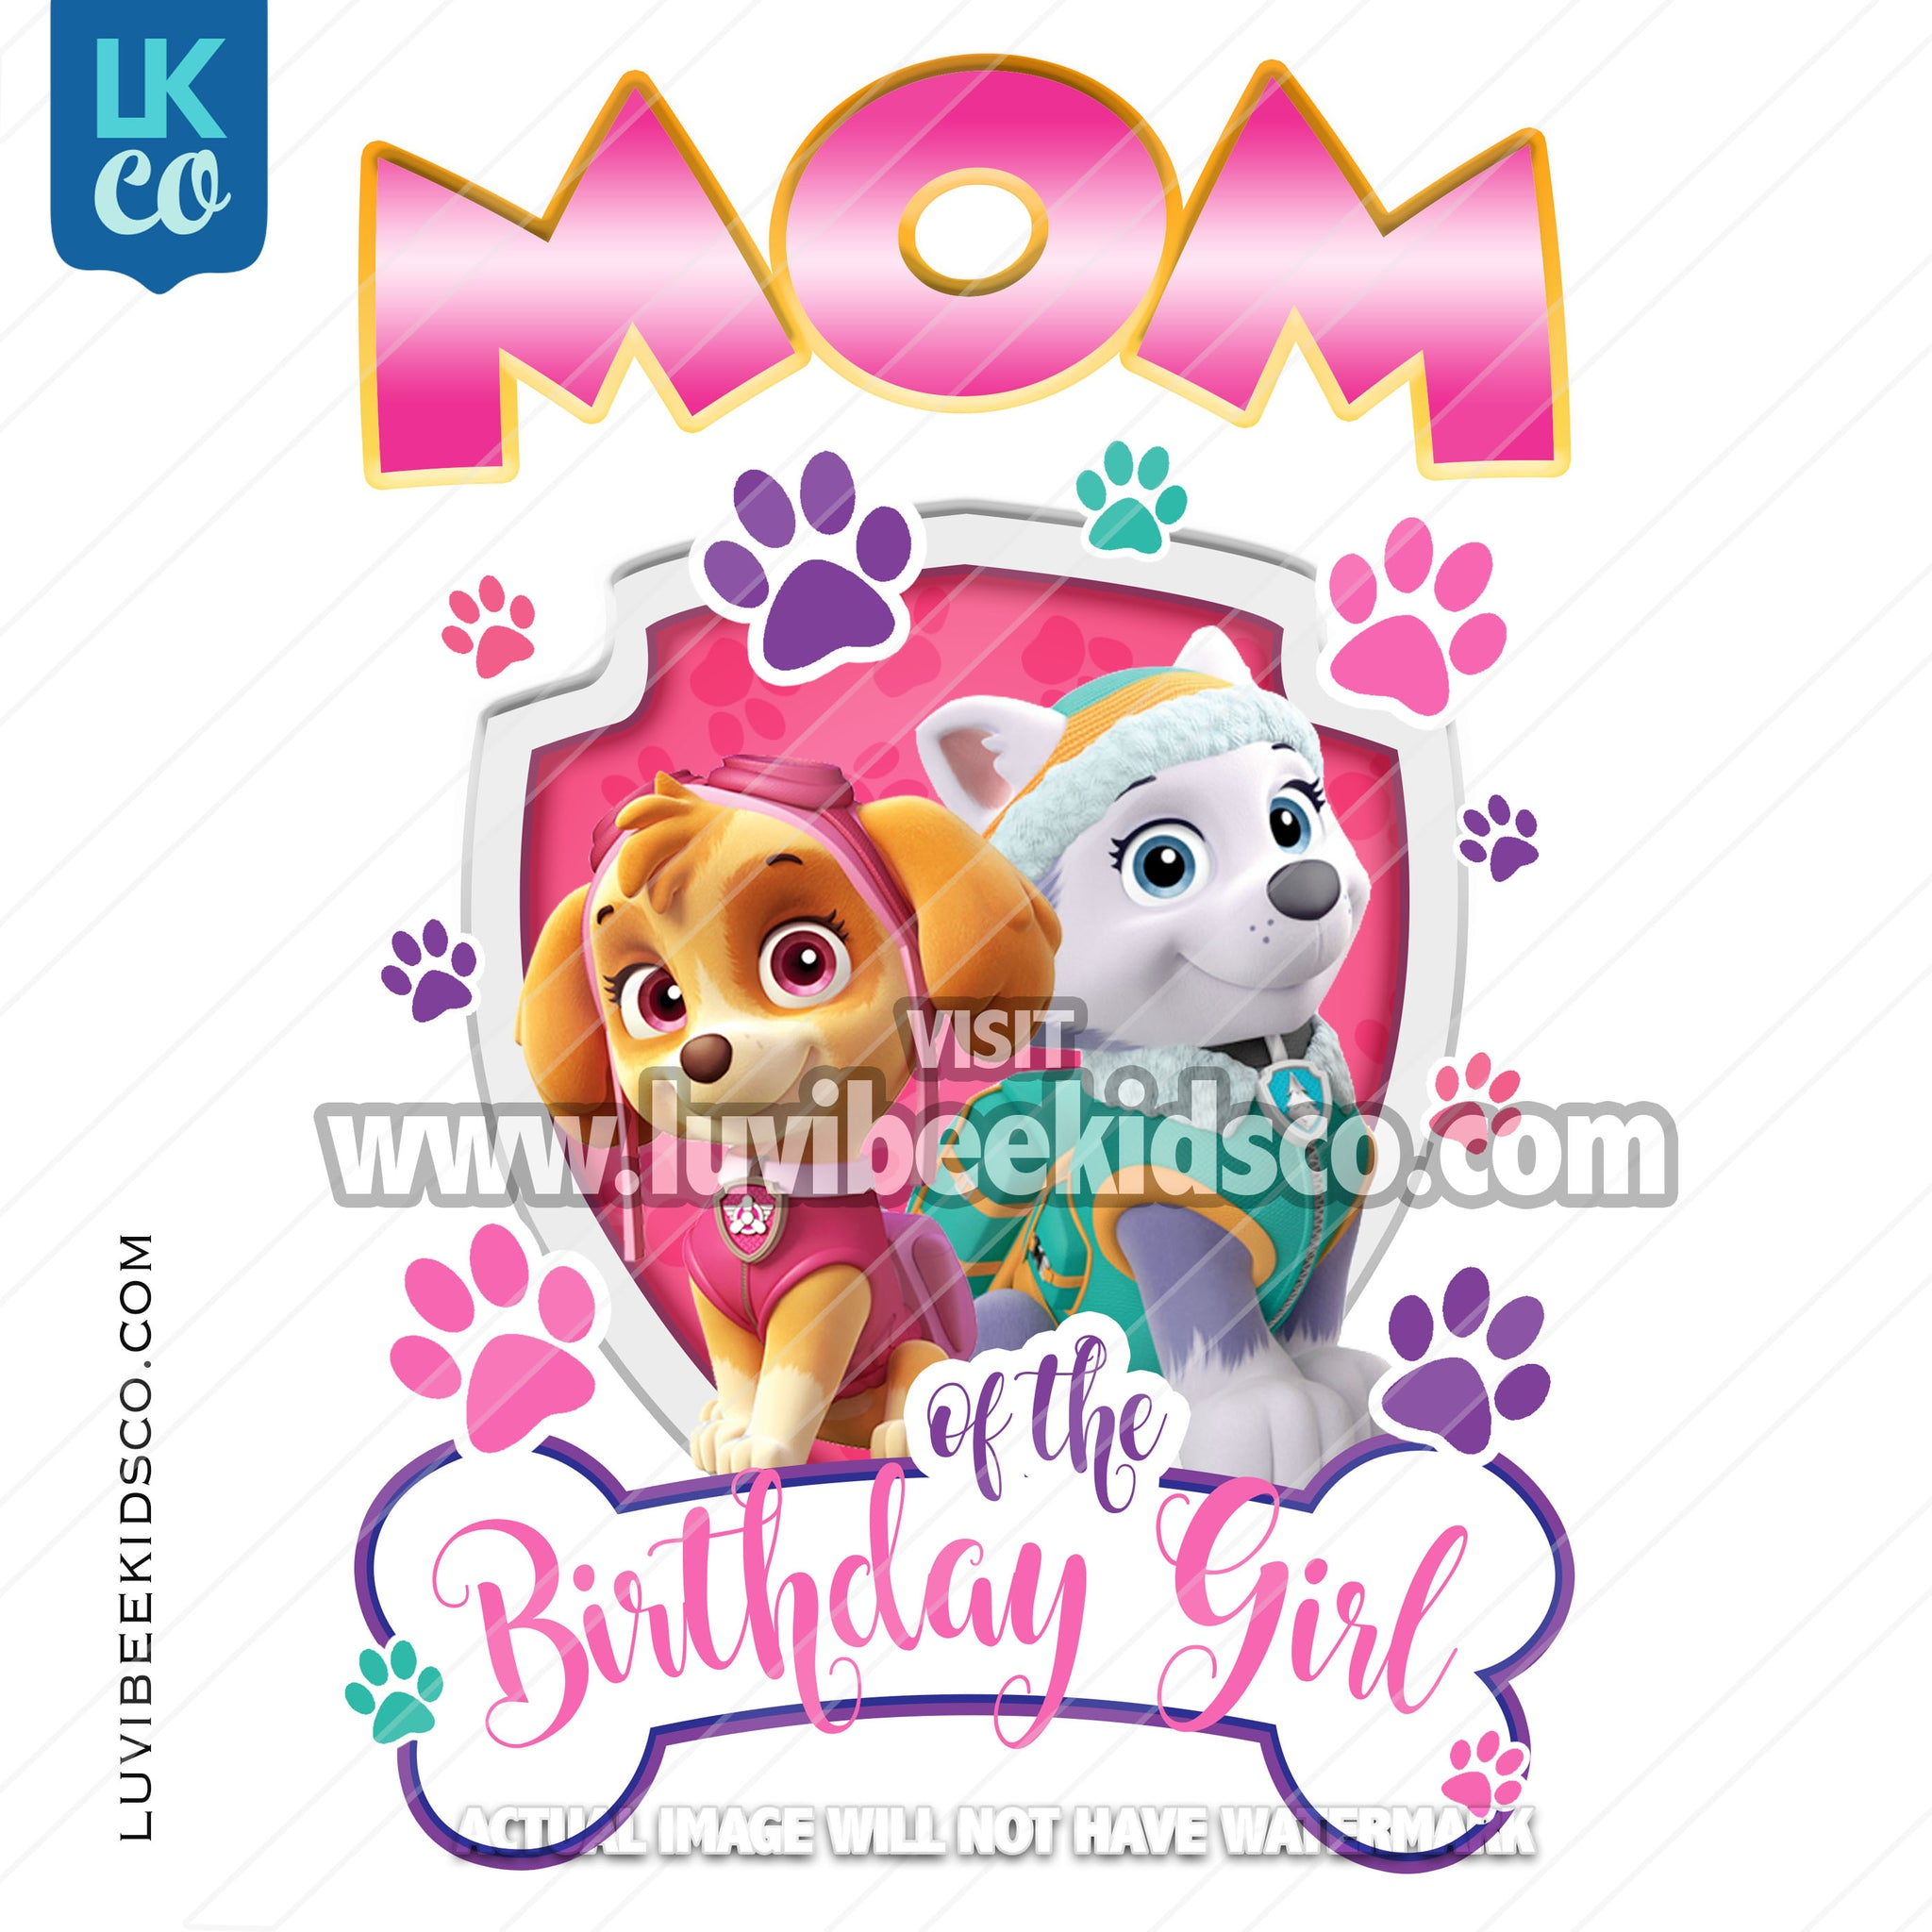 Digital File [12-24hr email] - Paw Patrol, Skye, Everest - Mom of the Birthday Girl - LuvibeeKidsCo